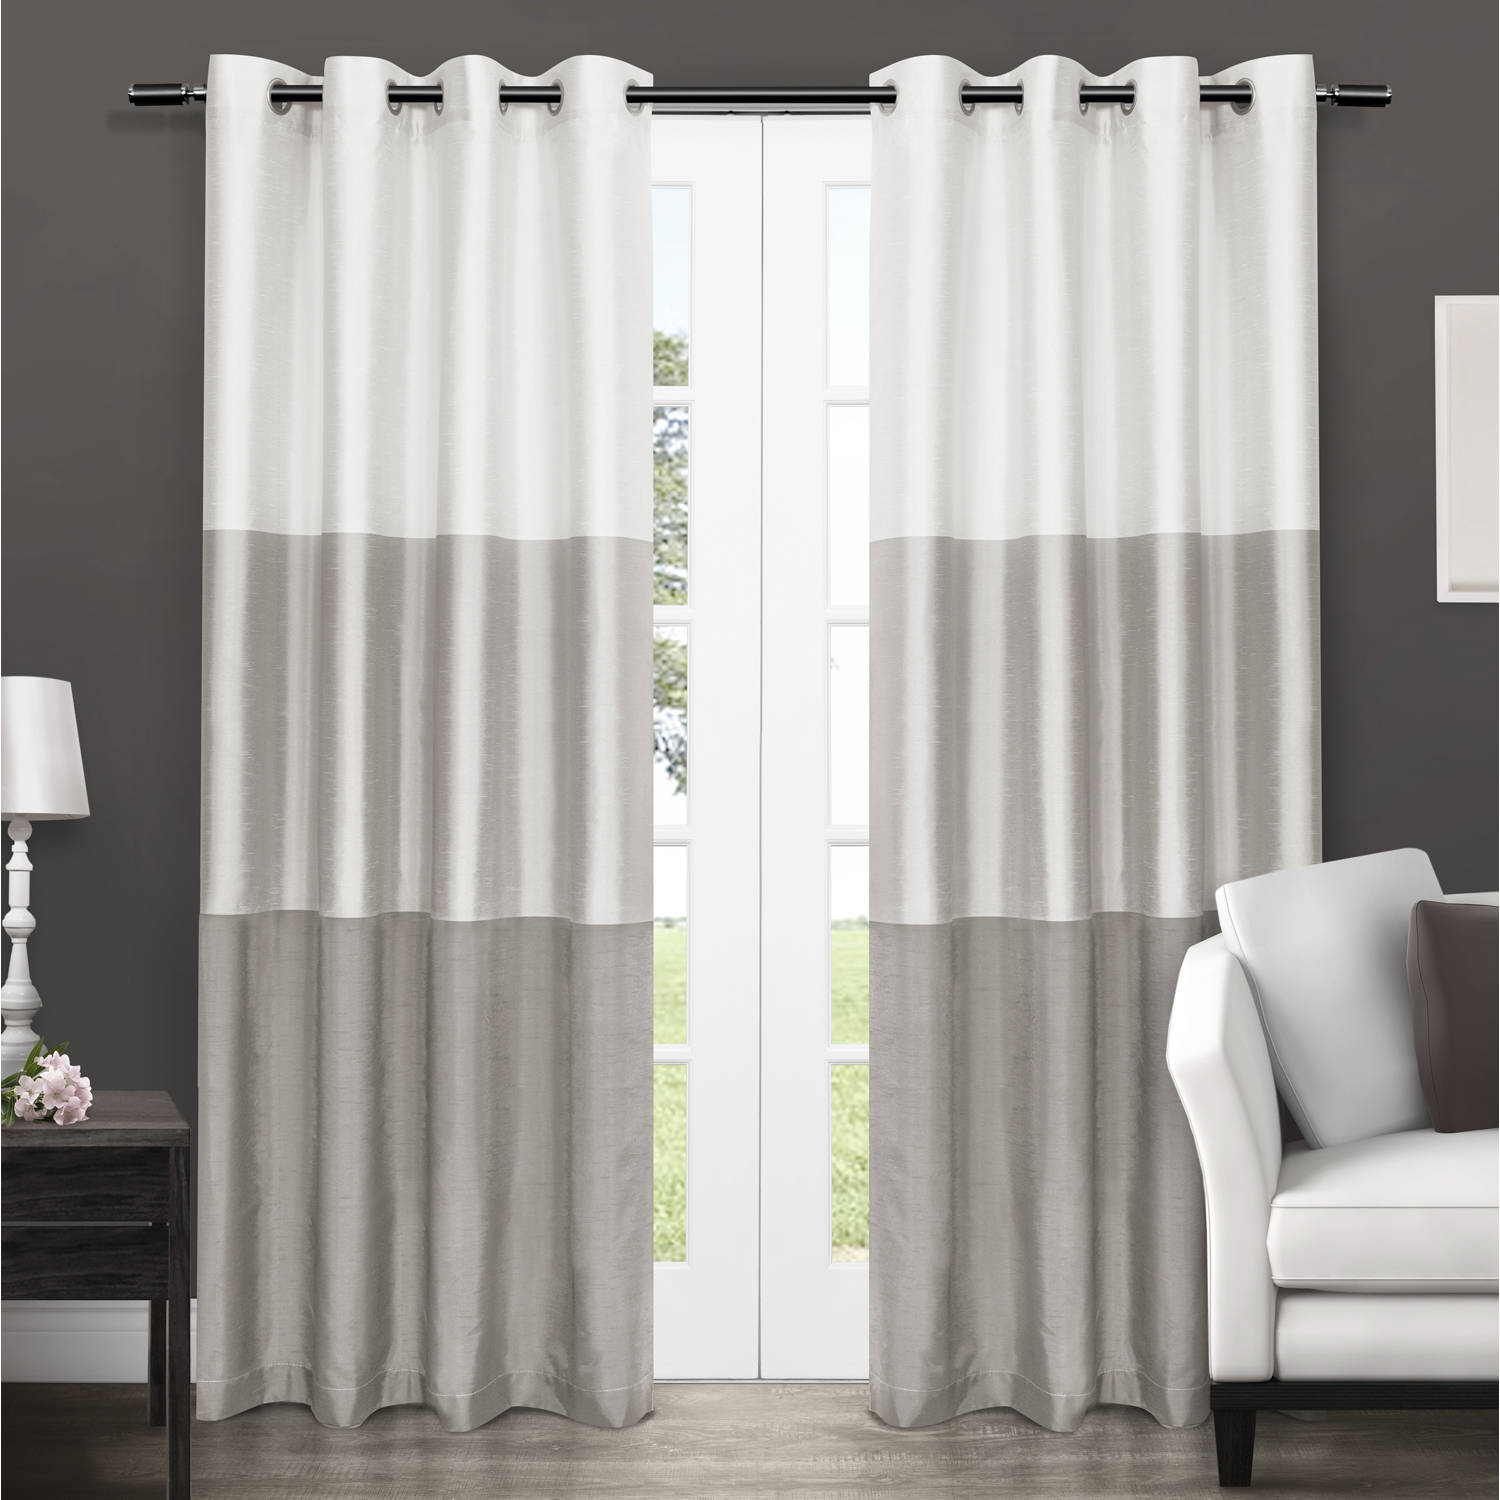 curtains design chic bathroom with modern curtain use designs look ways interior inspire remarkable inspiring grey to striped